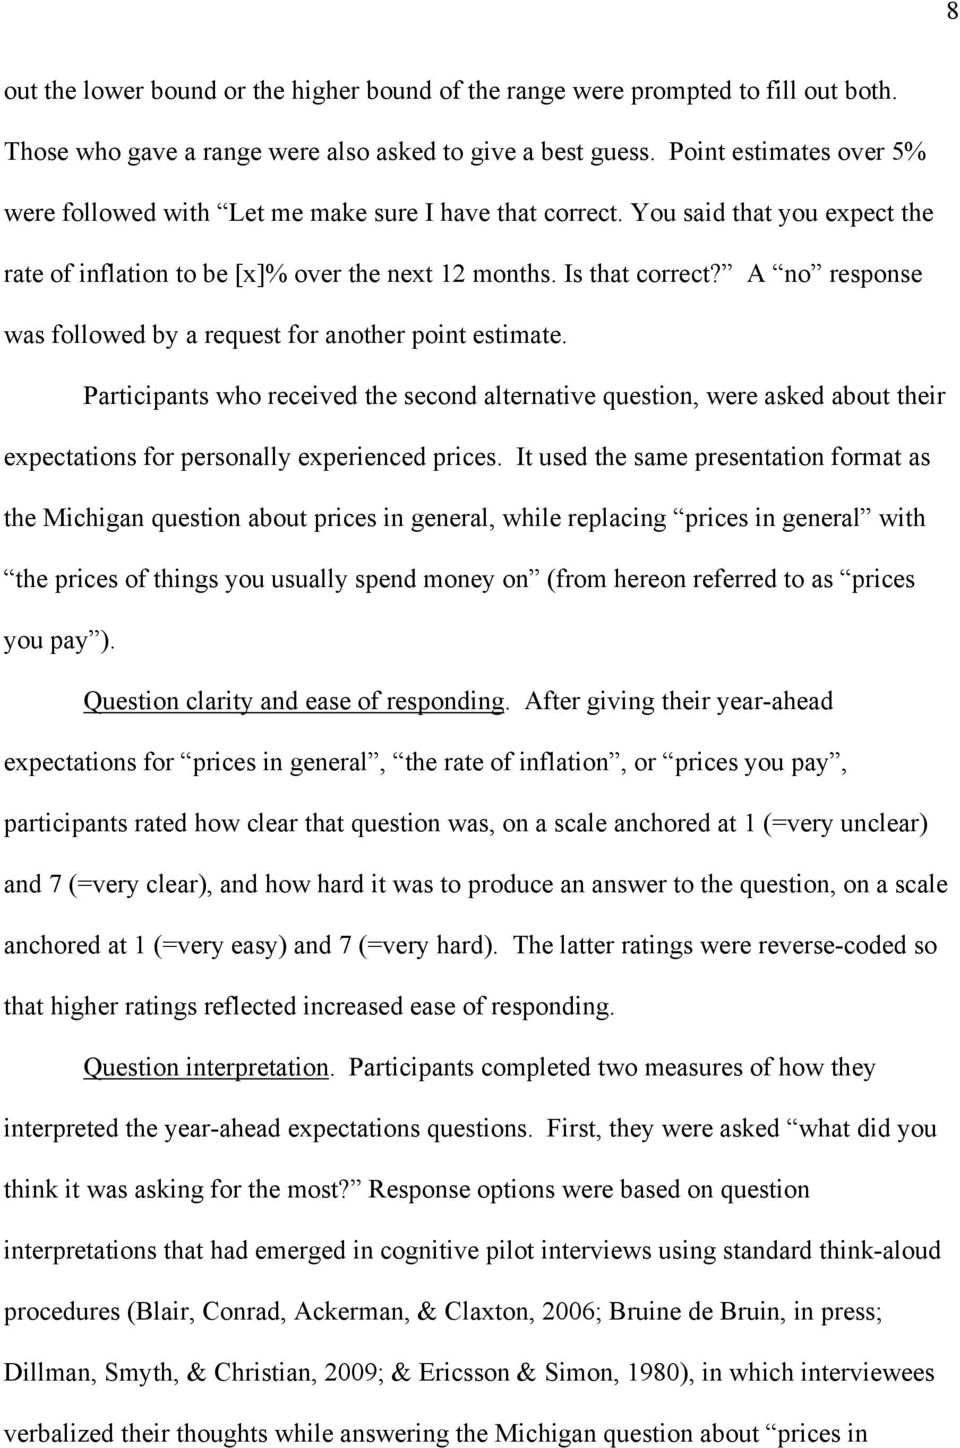 A no response was followed by a request for another point estimate. Participants who received the second alternative question, were asked about their expectations for personally experienced prices.